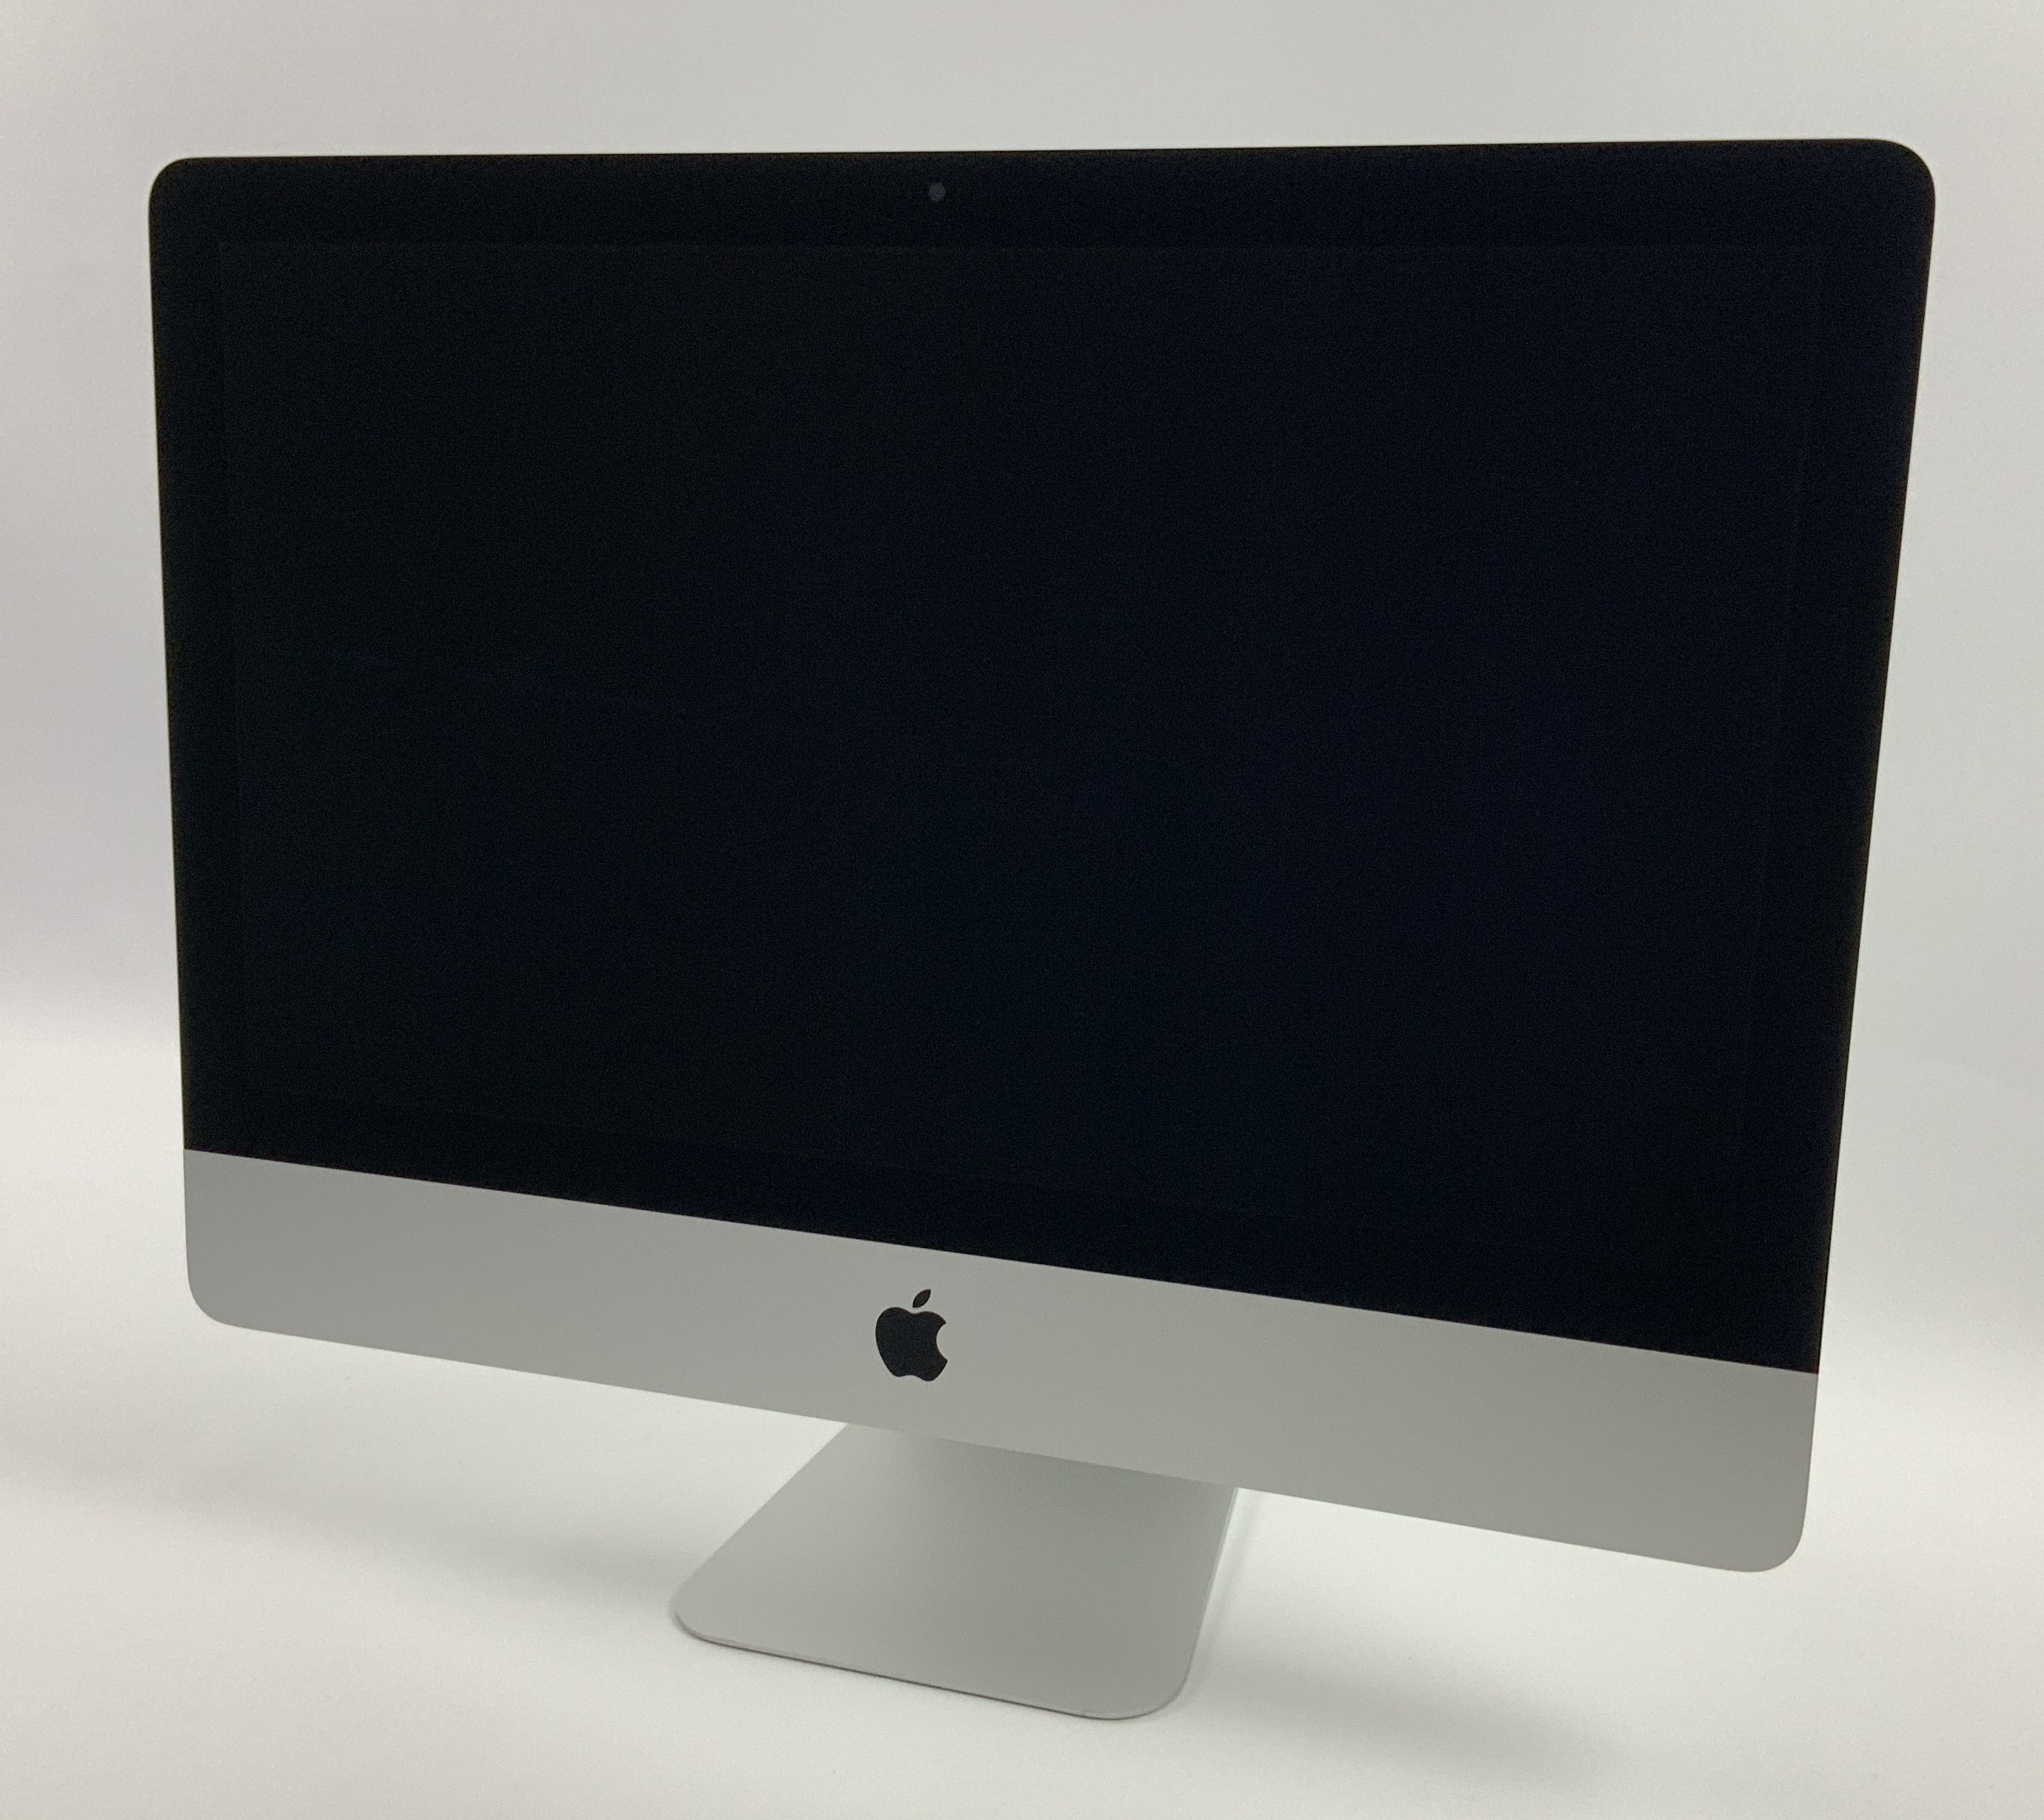 "iMac 21.5"" Late 2015 (Intel Core i5 1.6 GHz 8 GB RAM 1 TB HDD), Intel Core i5 1.6 GHz, 8 GB RAM, 1 TB HDD, obraz 1"